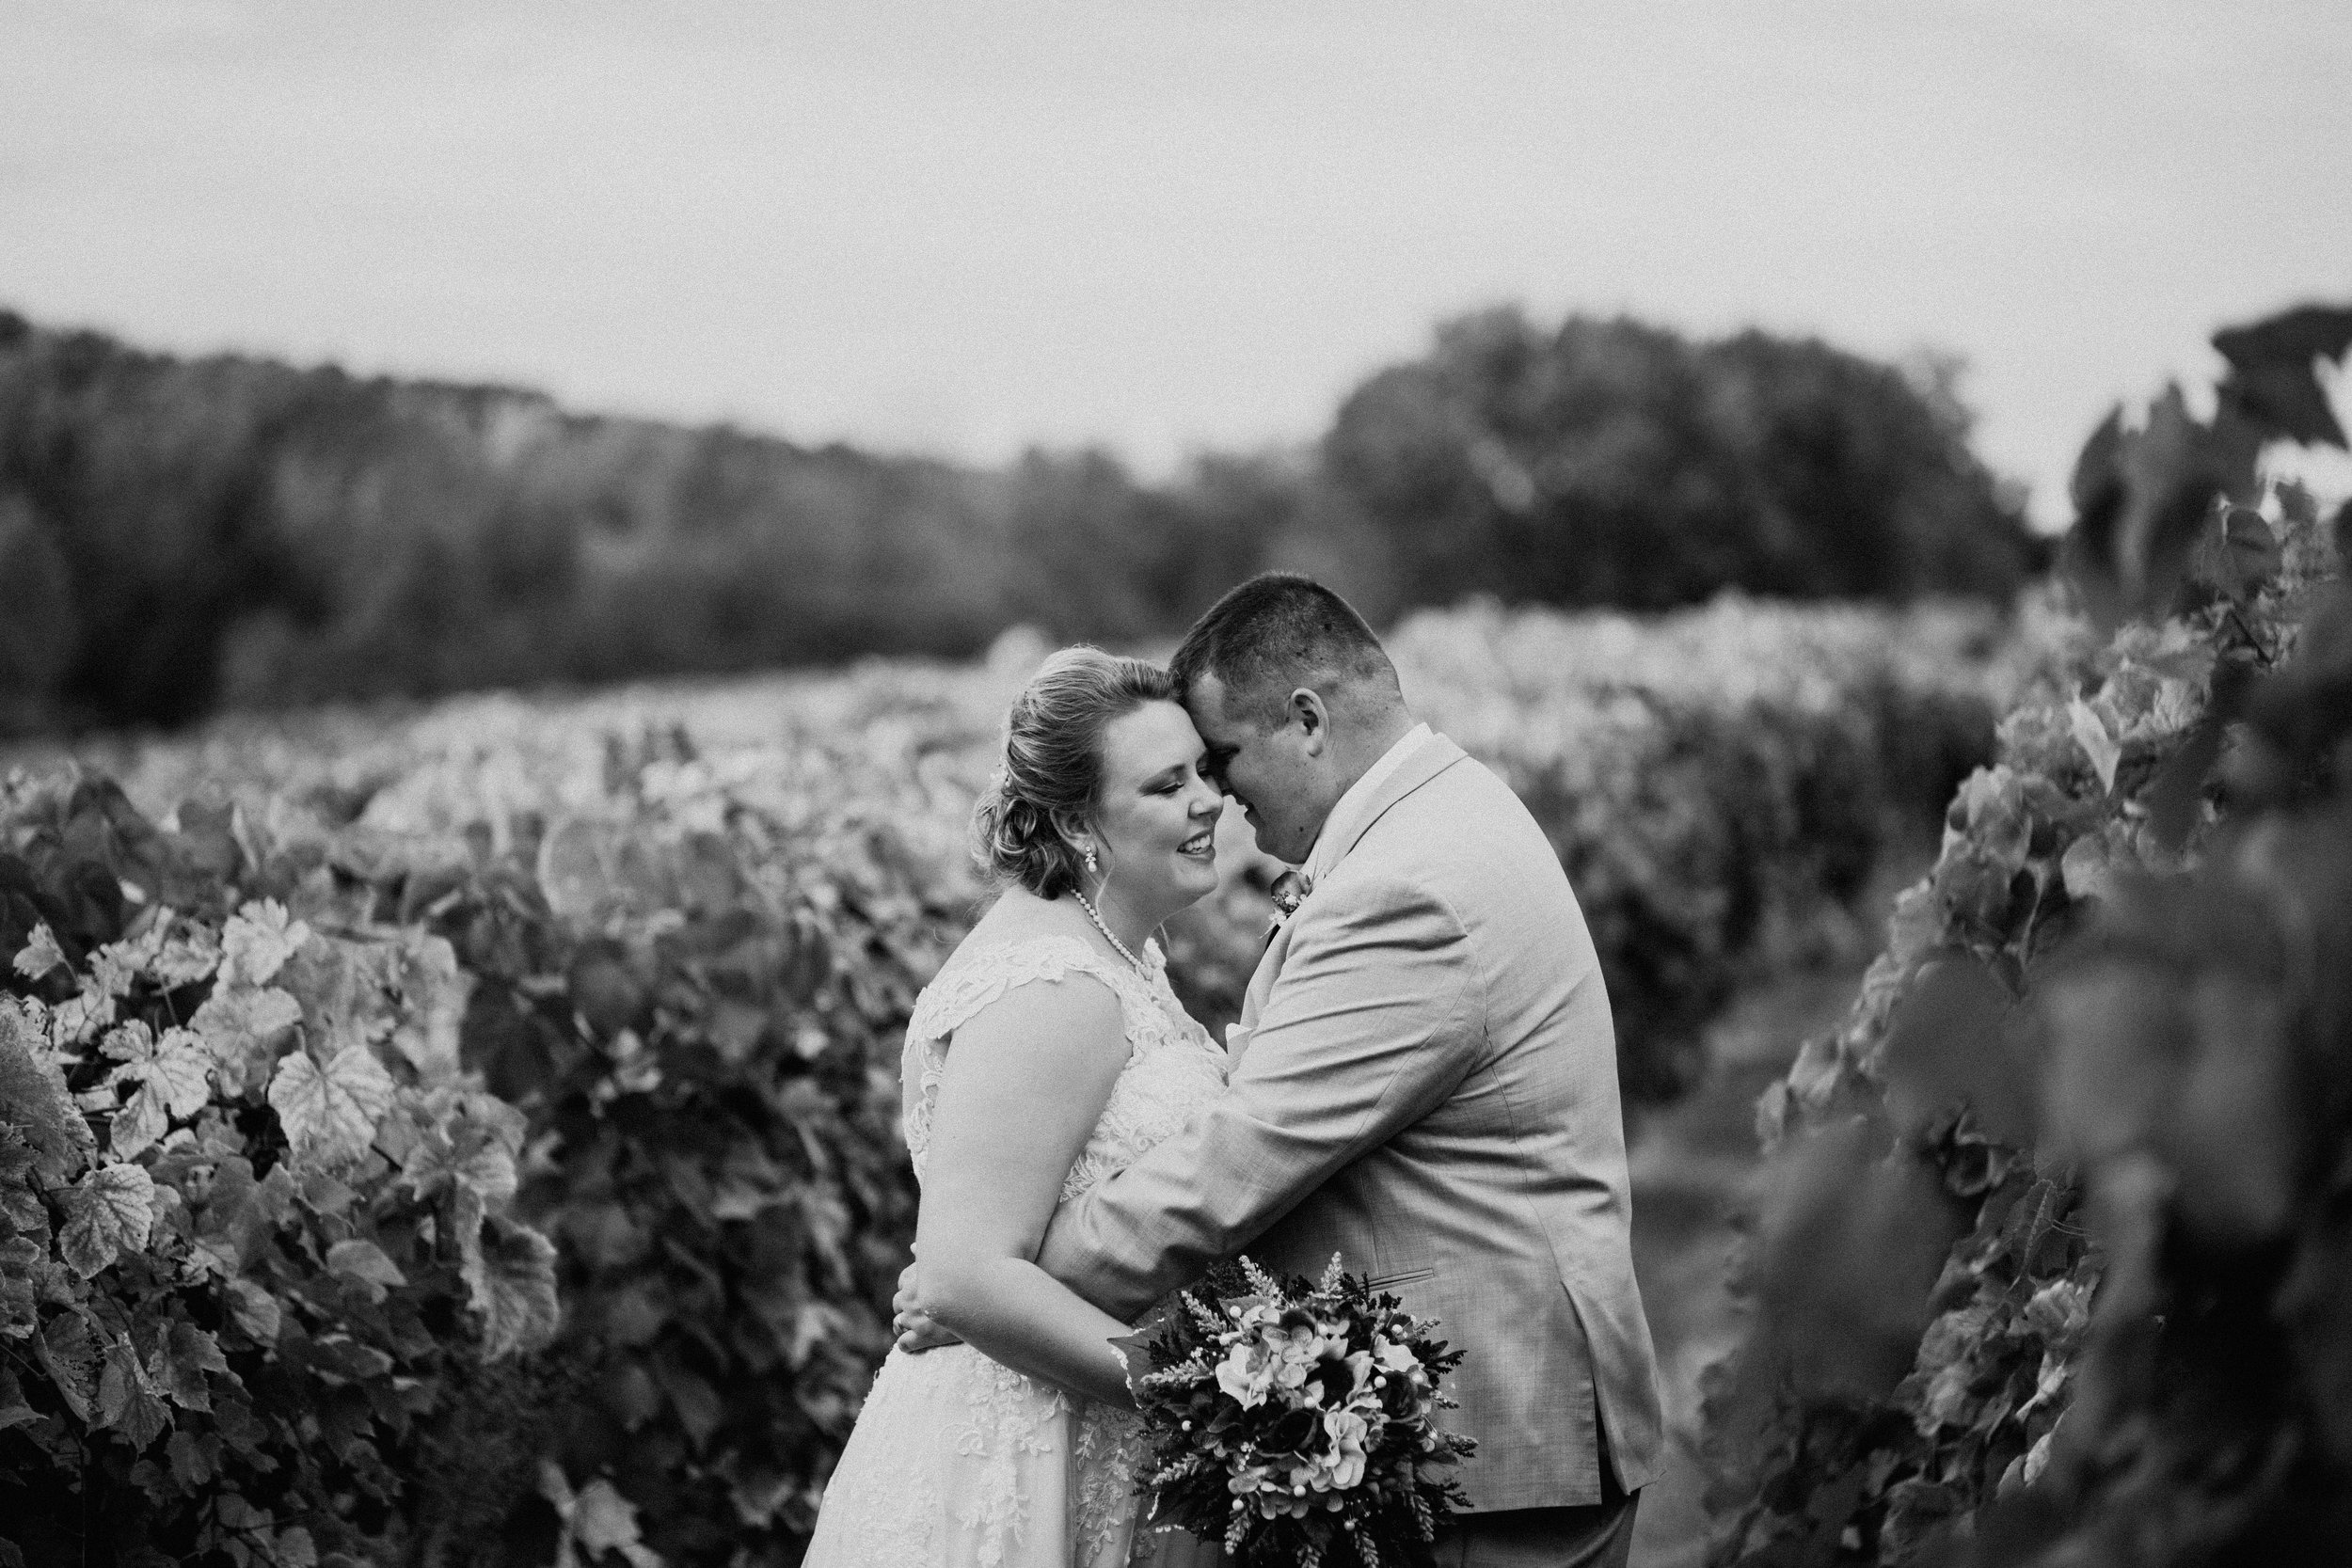 Wedding at Sugar Creek Winery  Maranda and Zac's Wedding Day  Defiance, Missouri  Phoenix Wedding Photographer398.jpg